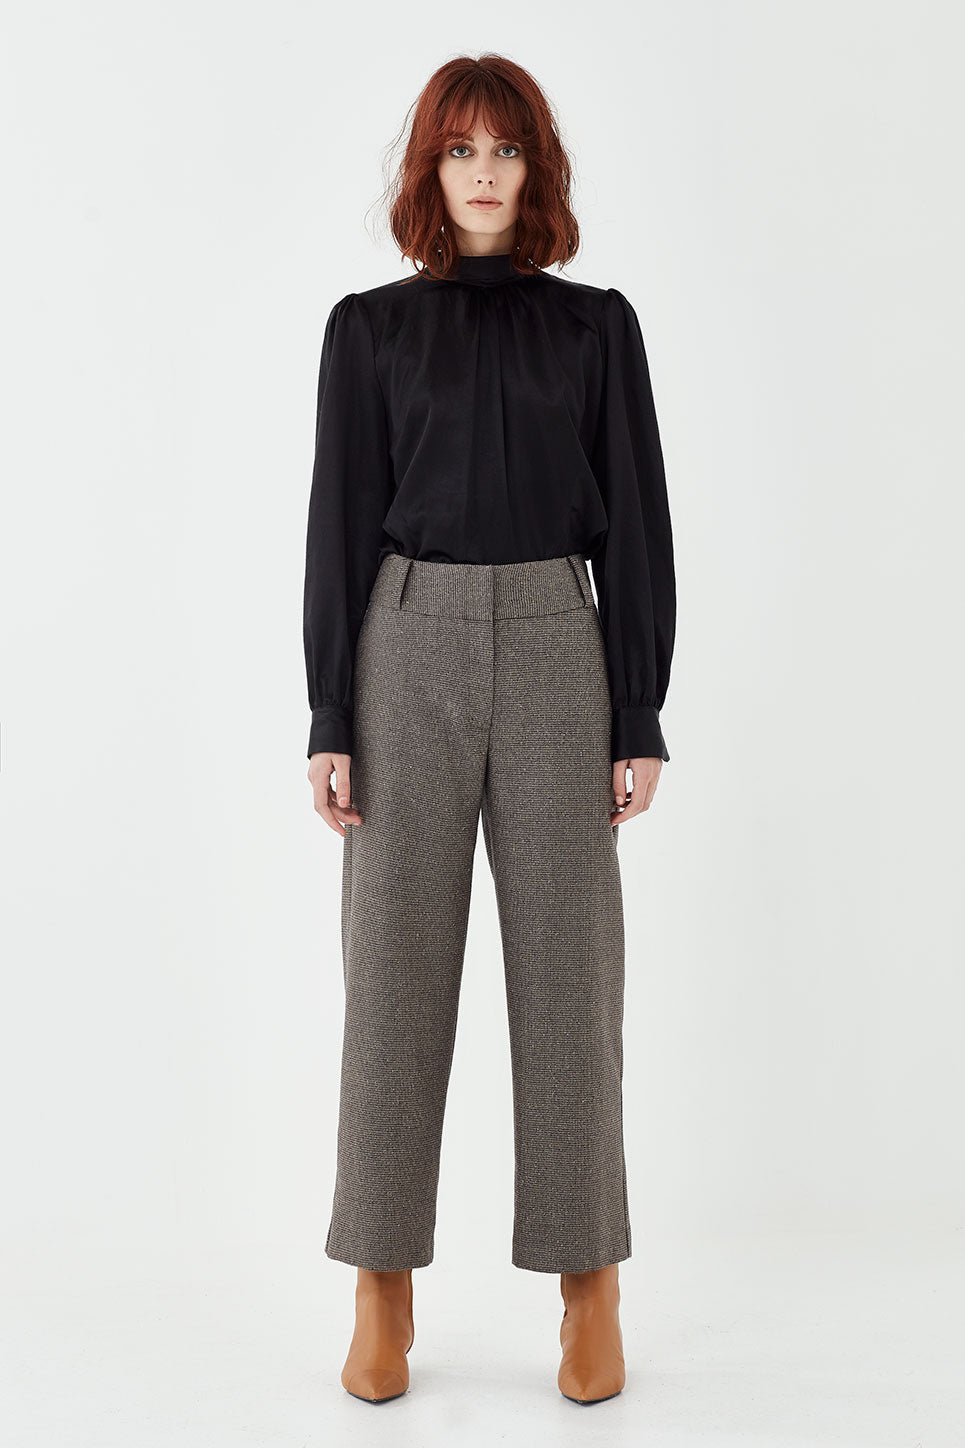 The Whitman Trouser in Houndstooth